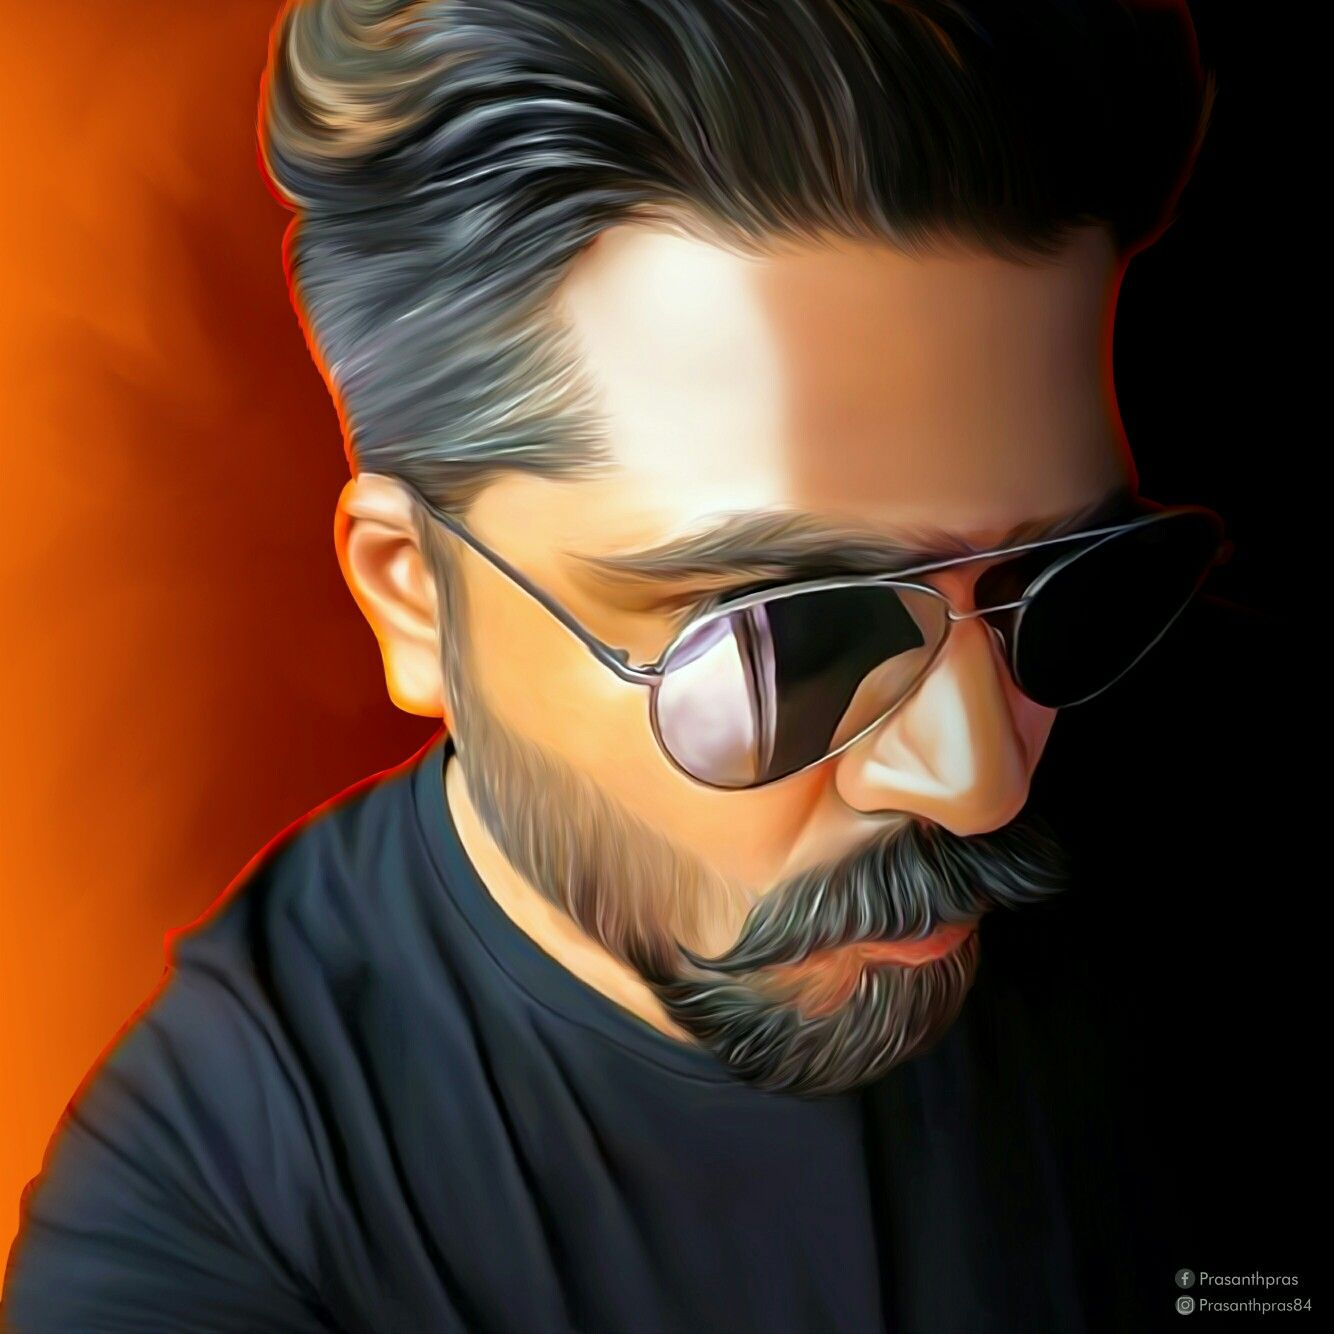 Str Simbu Prasanthpras Prasanthpras84 Thala Ajith Digitalart Digitalpainting Oilpaint Smudge Arts New Movie Images Actors Images Indian Painting